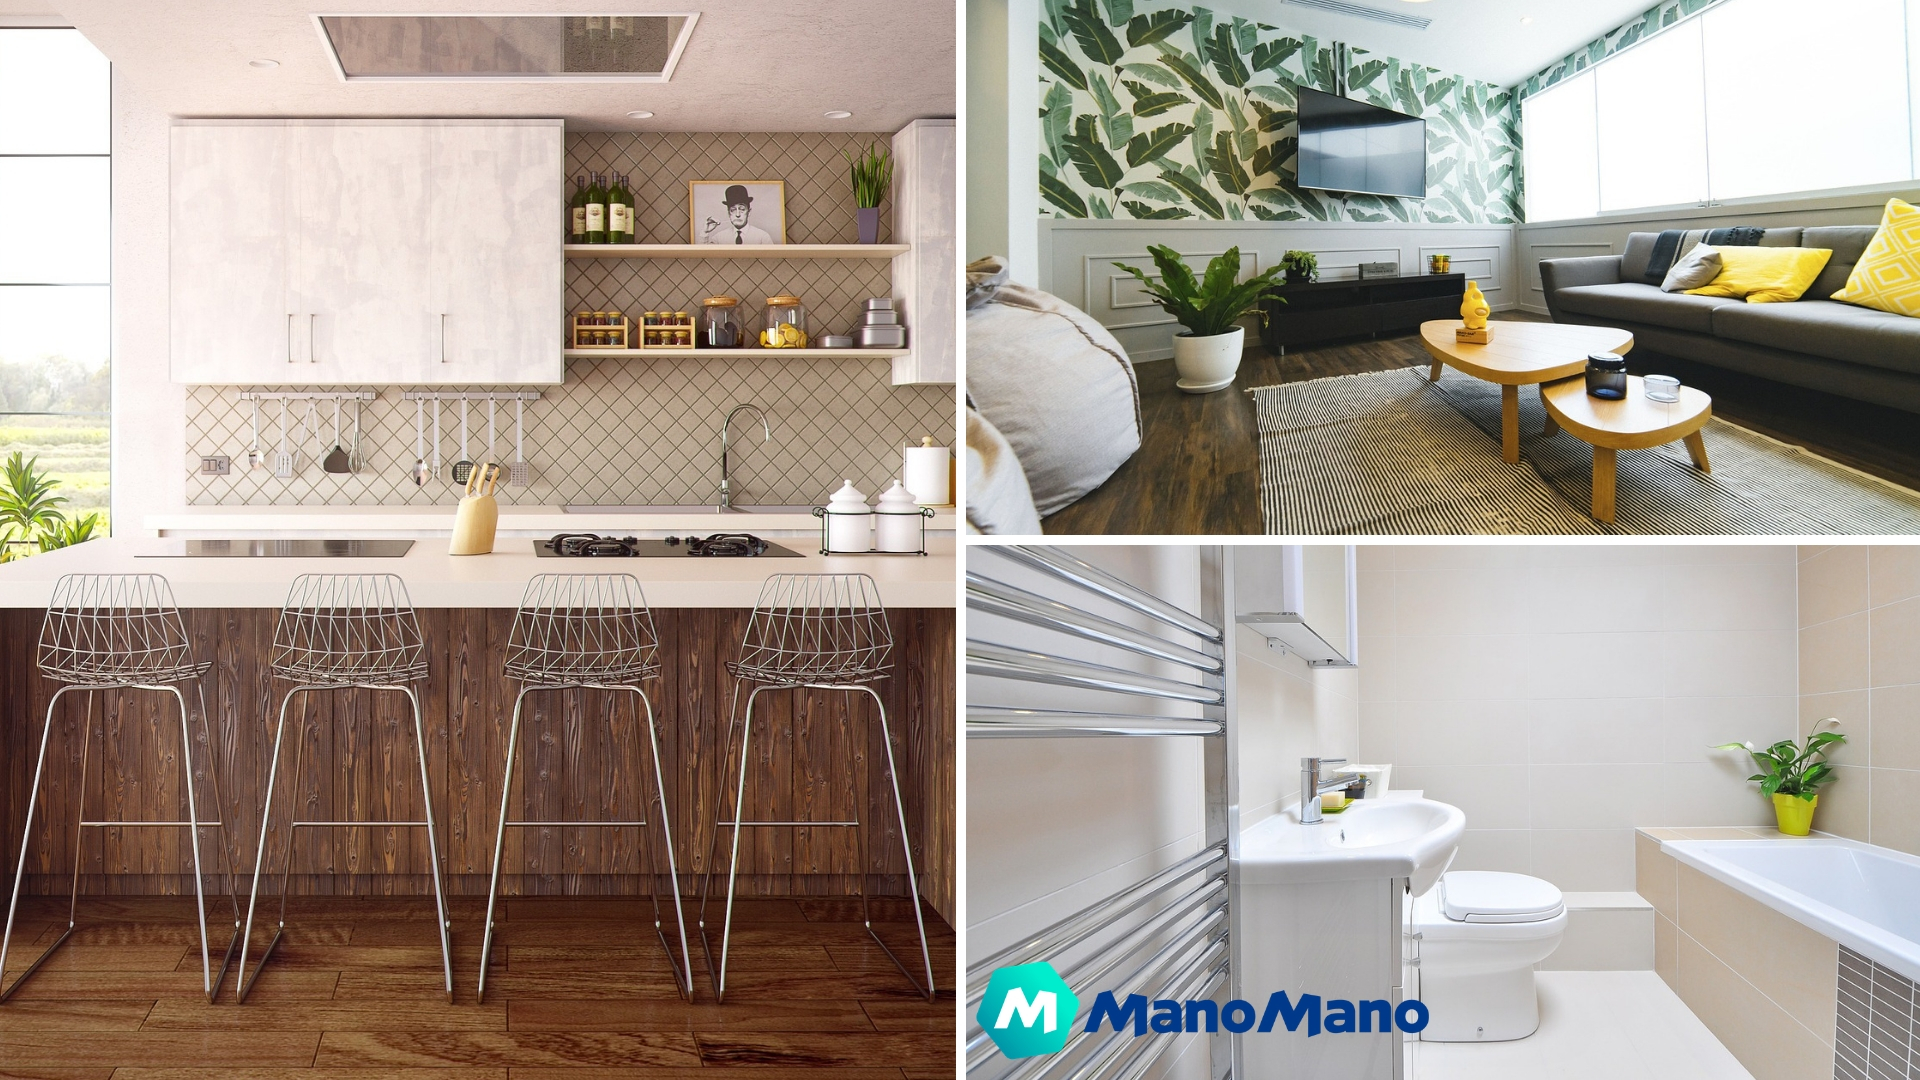 Home Renovation Tips on a Budget - The Handy Mano